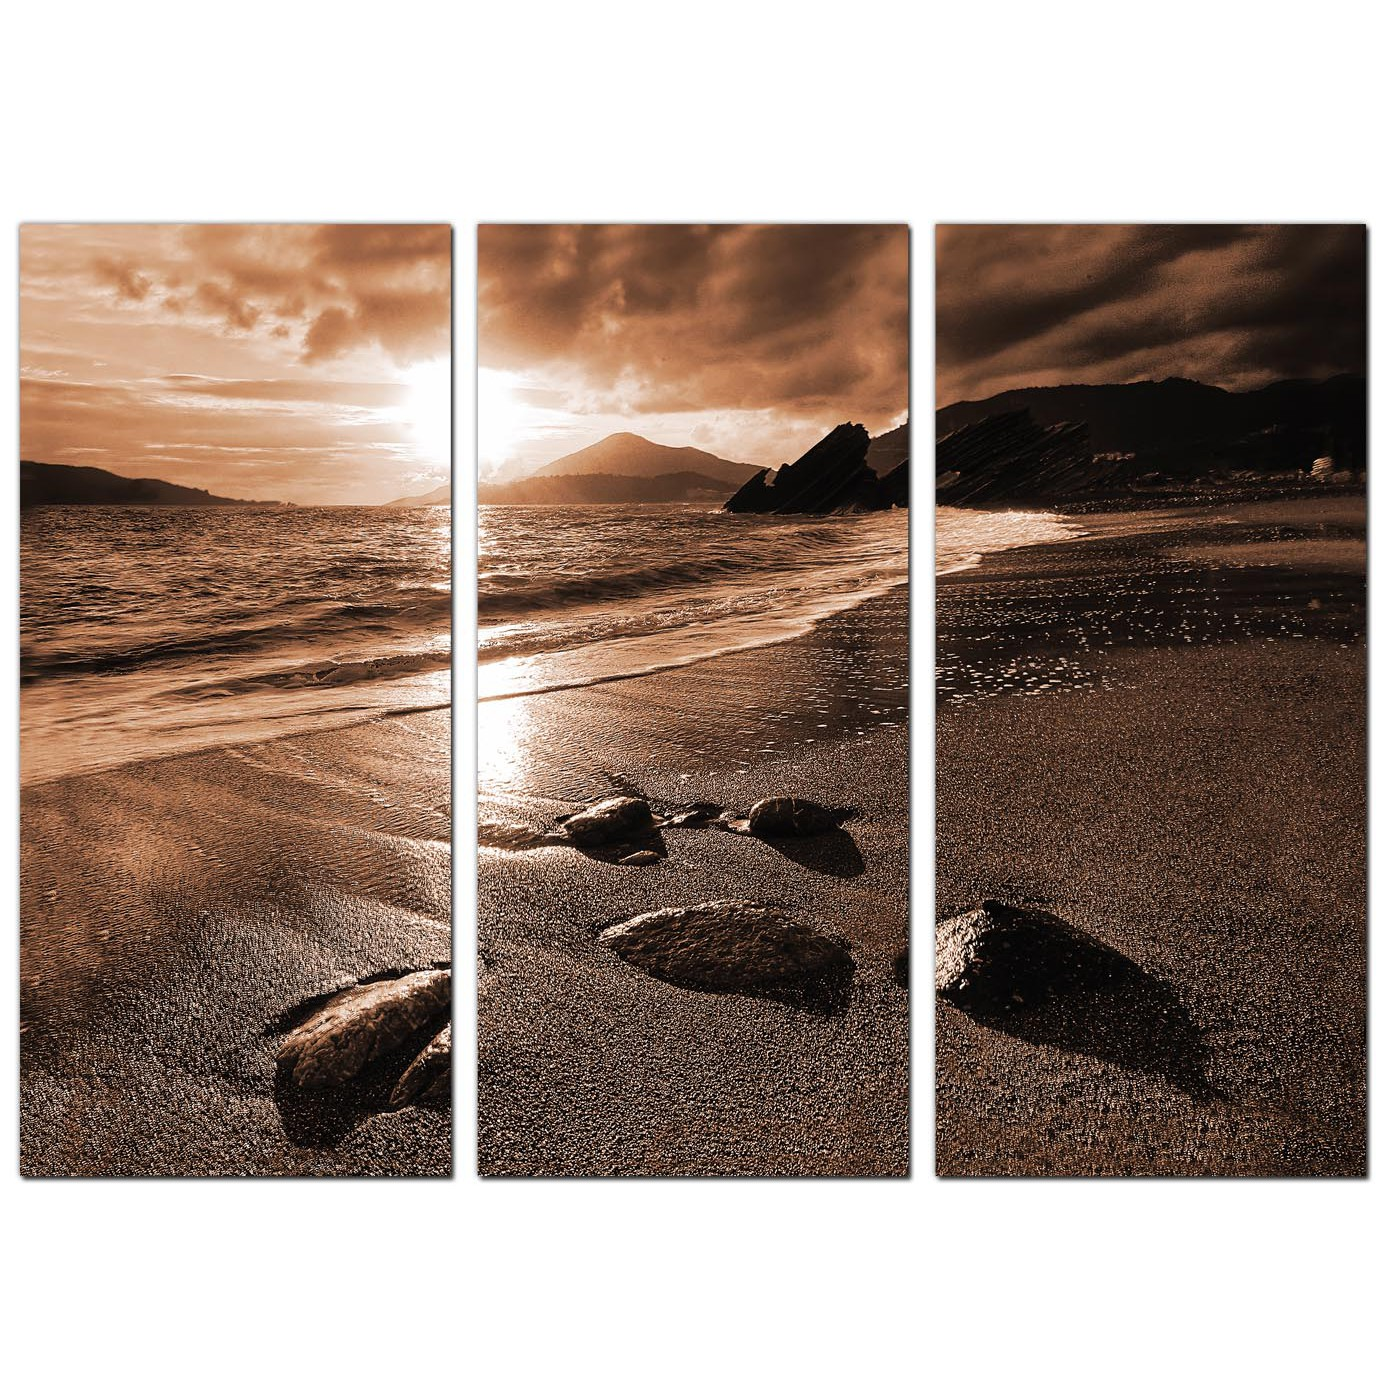 Display Gallery Item 2; 3 Panel Sepia Canvas Prints UK Hallway 3076 Display Gallery Item 3 ...  sc 1 st  Wallfillers & Beach Sunset Canvas Art Set of 3 for your Hallway